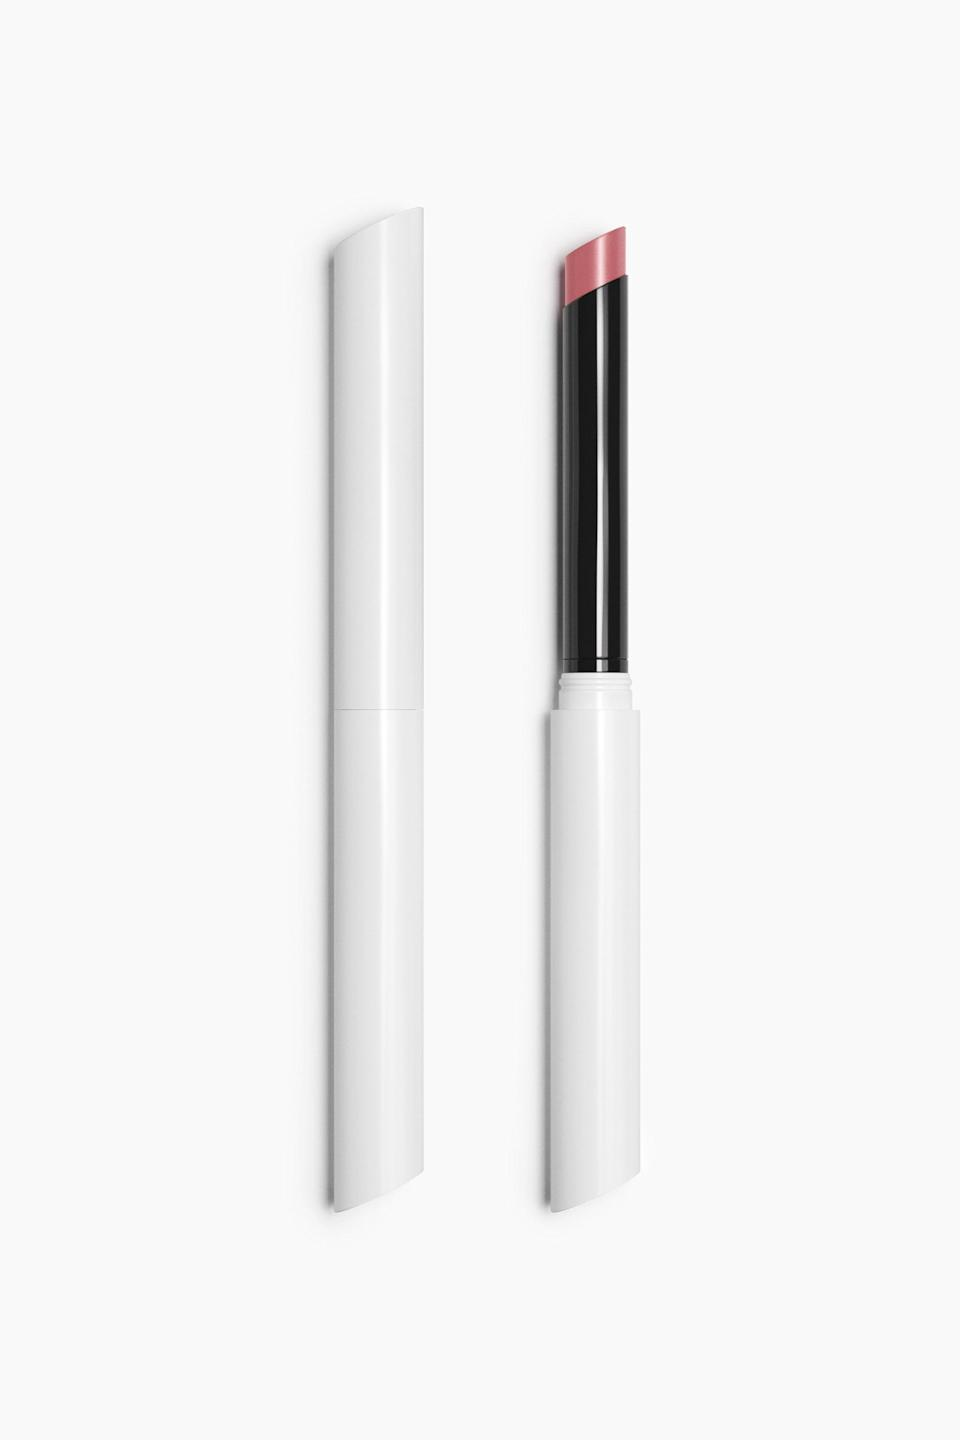 """<h3>Stiletto Demi-Matte Lipstick</h3><br>If you like a <a href=""""https://www.refinery29.com/en-us/2021/04/10424202/rihanna-heeled-flip-flops-spring-21-shoe-trend"""" rel=""""nofollow noopener"""" target=""""_blank"""" data-ylk=""""slk:high-heel sandal"""" class=""""link rapid-noclick-resp"""">high-heel sandal</a>, you might gravitate towards the aesthetic of the Stiletto lipstick. The skinnier compact allows for more precision in application, and the nine color options are all super pigmented.<br><br><strong>Zara</strong> Stiletto Demi-Matte Lipstick - Refillable, $, available at <a href=""""https://go.skimresources.com/?id=30283X879131&url=https%3A%2F%2Fwww.zara.com%2Fus%2Fen%2Fstiletto-demi-matte-lipstick---refillable-p24120300.html"""" rel=""""nofollow noopener"""" target=""""_blank"""" data-ylk=""""slk:Zara"""" class=""""link rapid-noclick-resp"""">Zara</a>"""